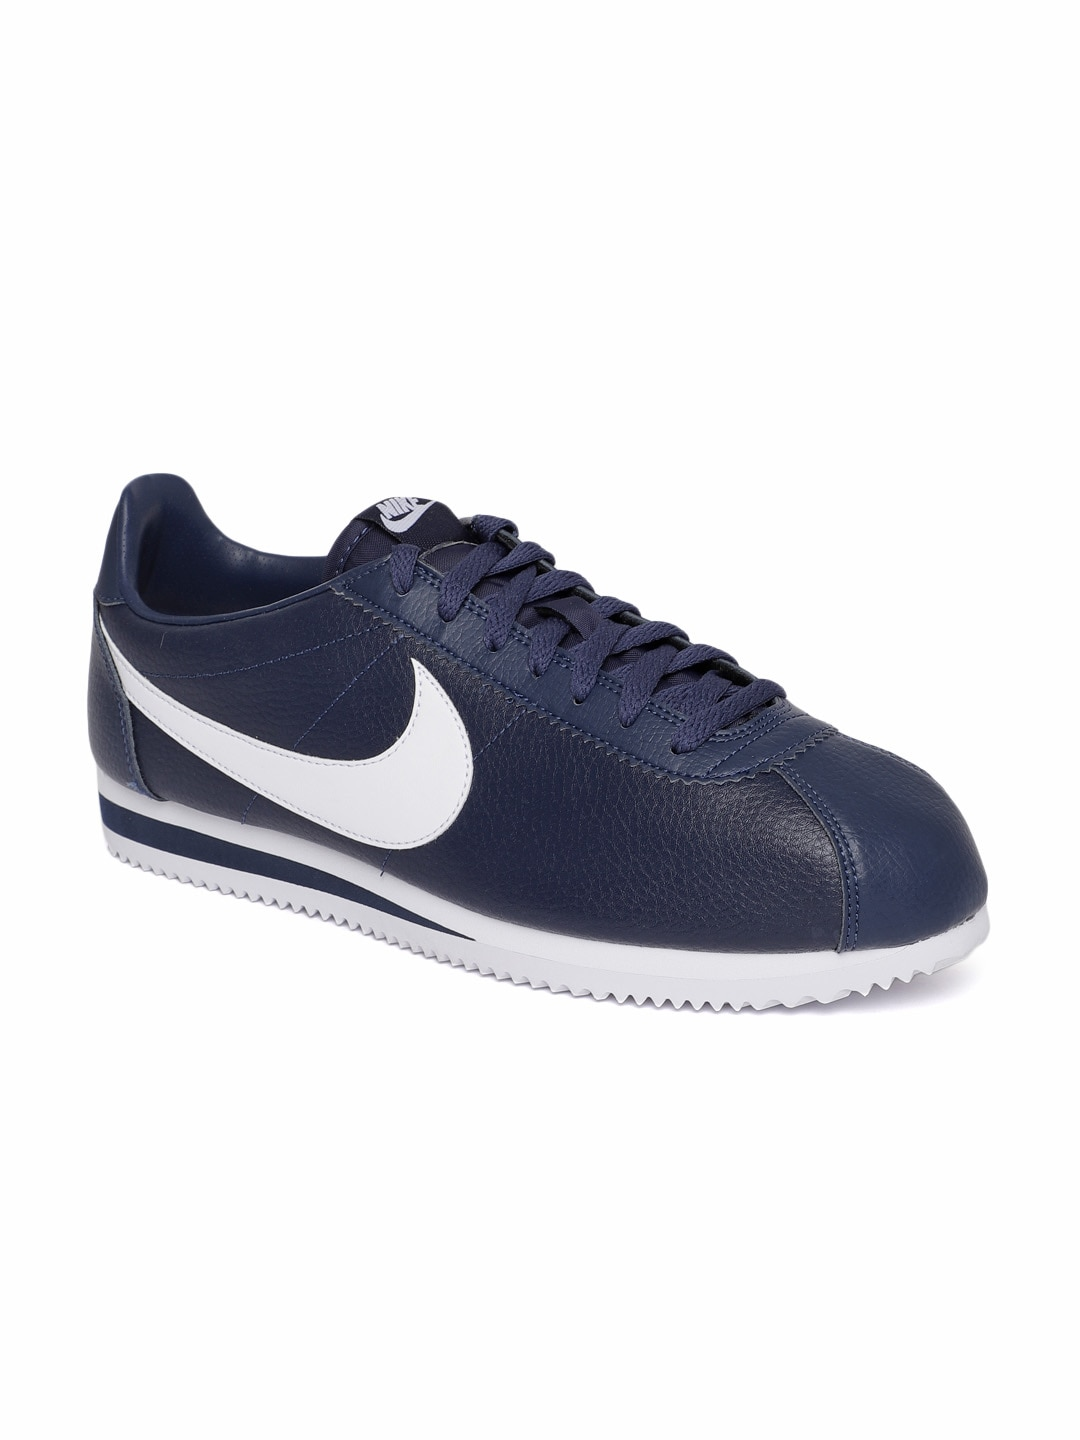 759e5343840 Nike Cortez Casual Shoes - Buy Nike Cortez Casual Shoes online in India